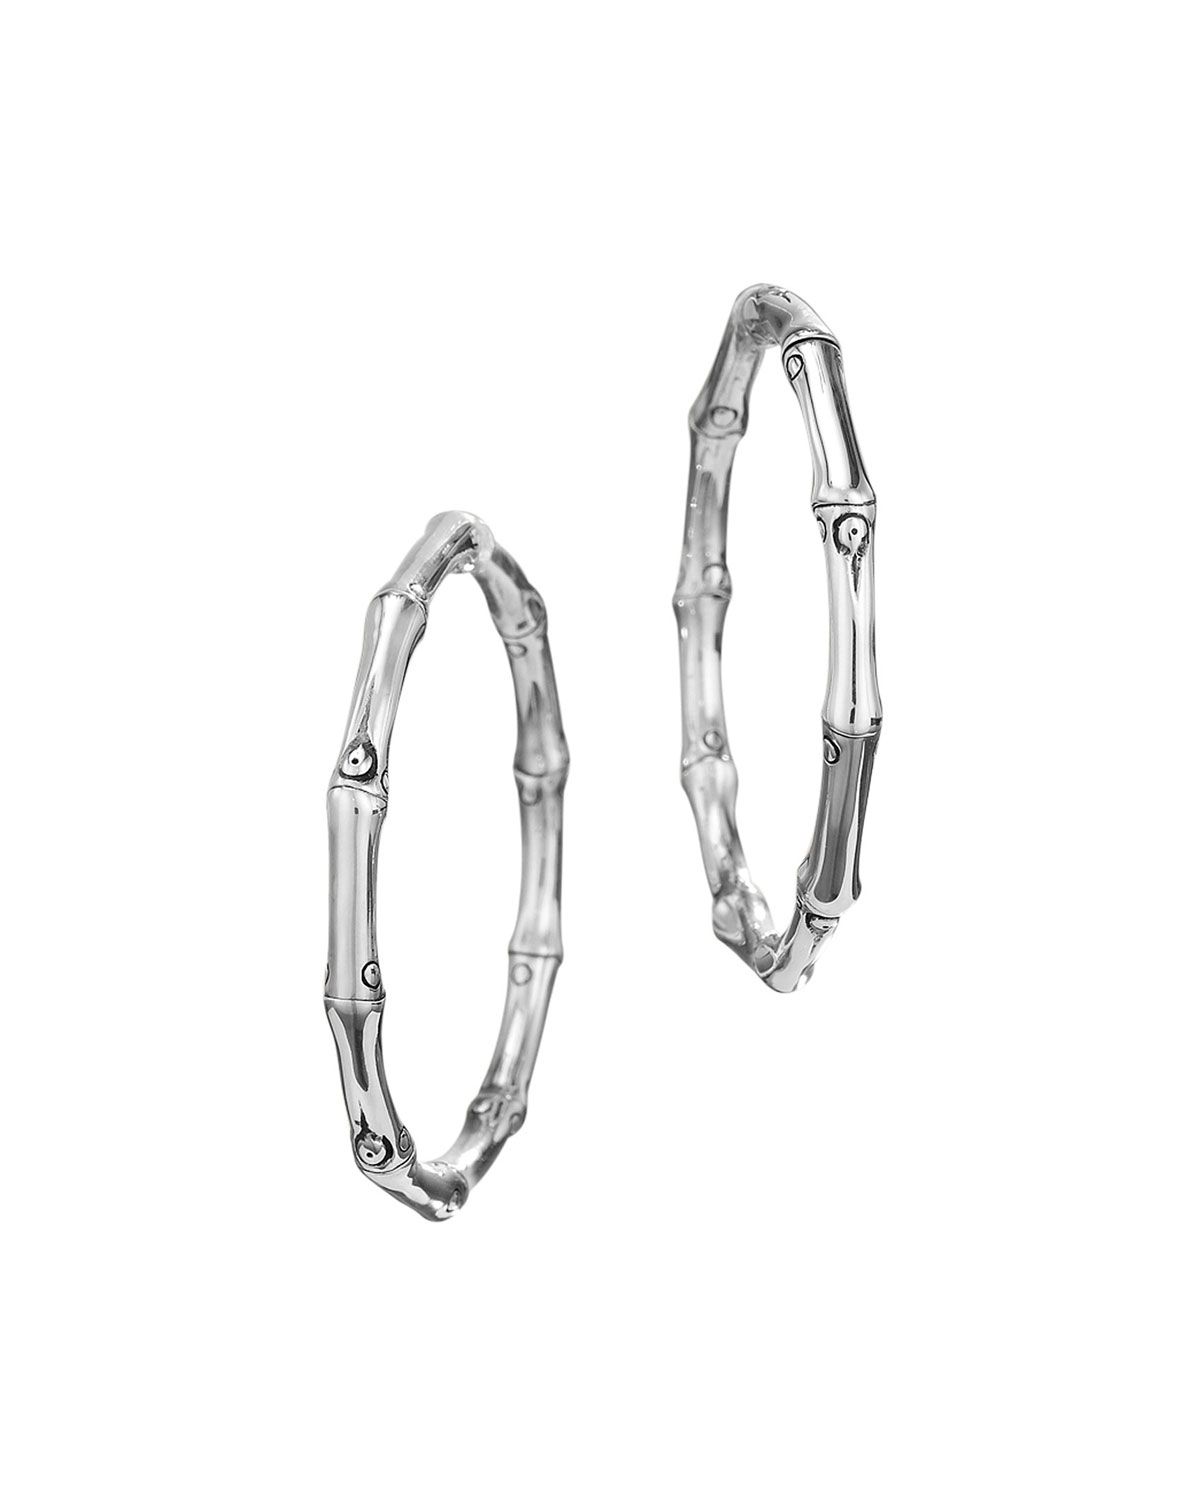 John Hardybamboo Hoop Earrings